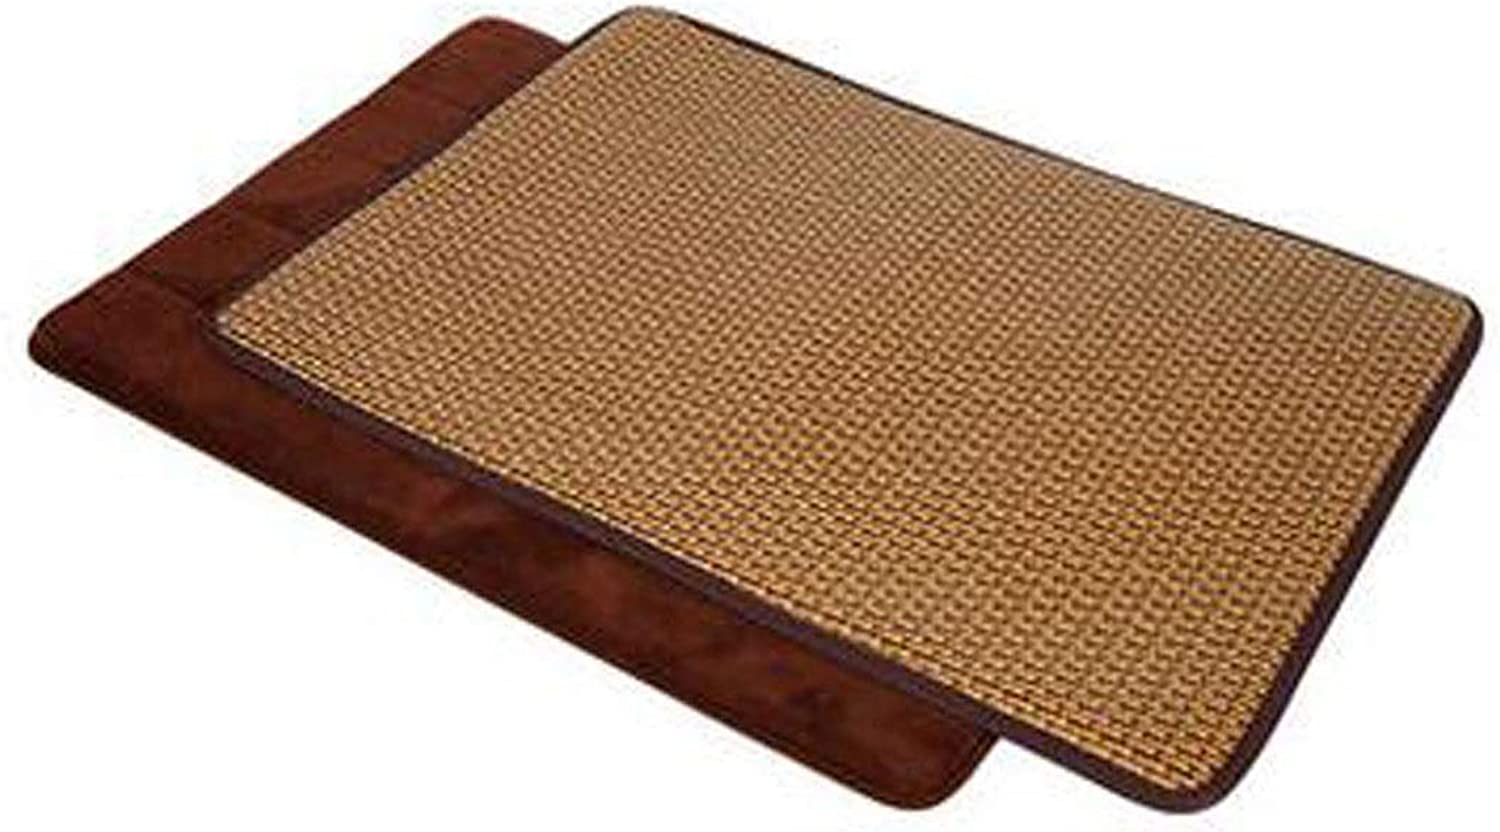 Dog Cooling Mattress Dog and Cat Bed Rattan Cooling Pad, Oversized - Non-Toxic, Non-Stick, Skin Friendly, Keeps Pets Cool and Cushioned, Set (mat + Cool Pad XL) (color   Brown, Size   S)